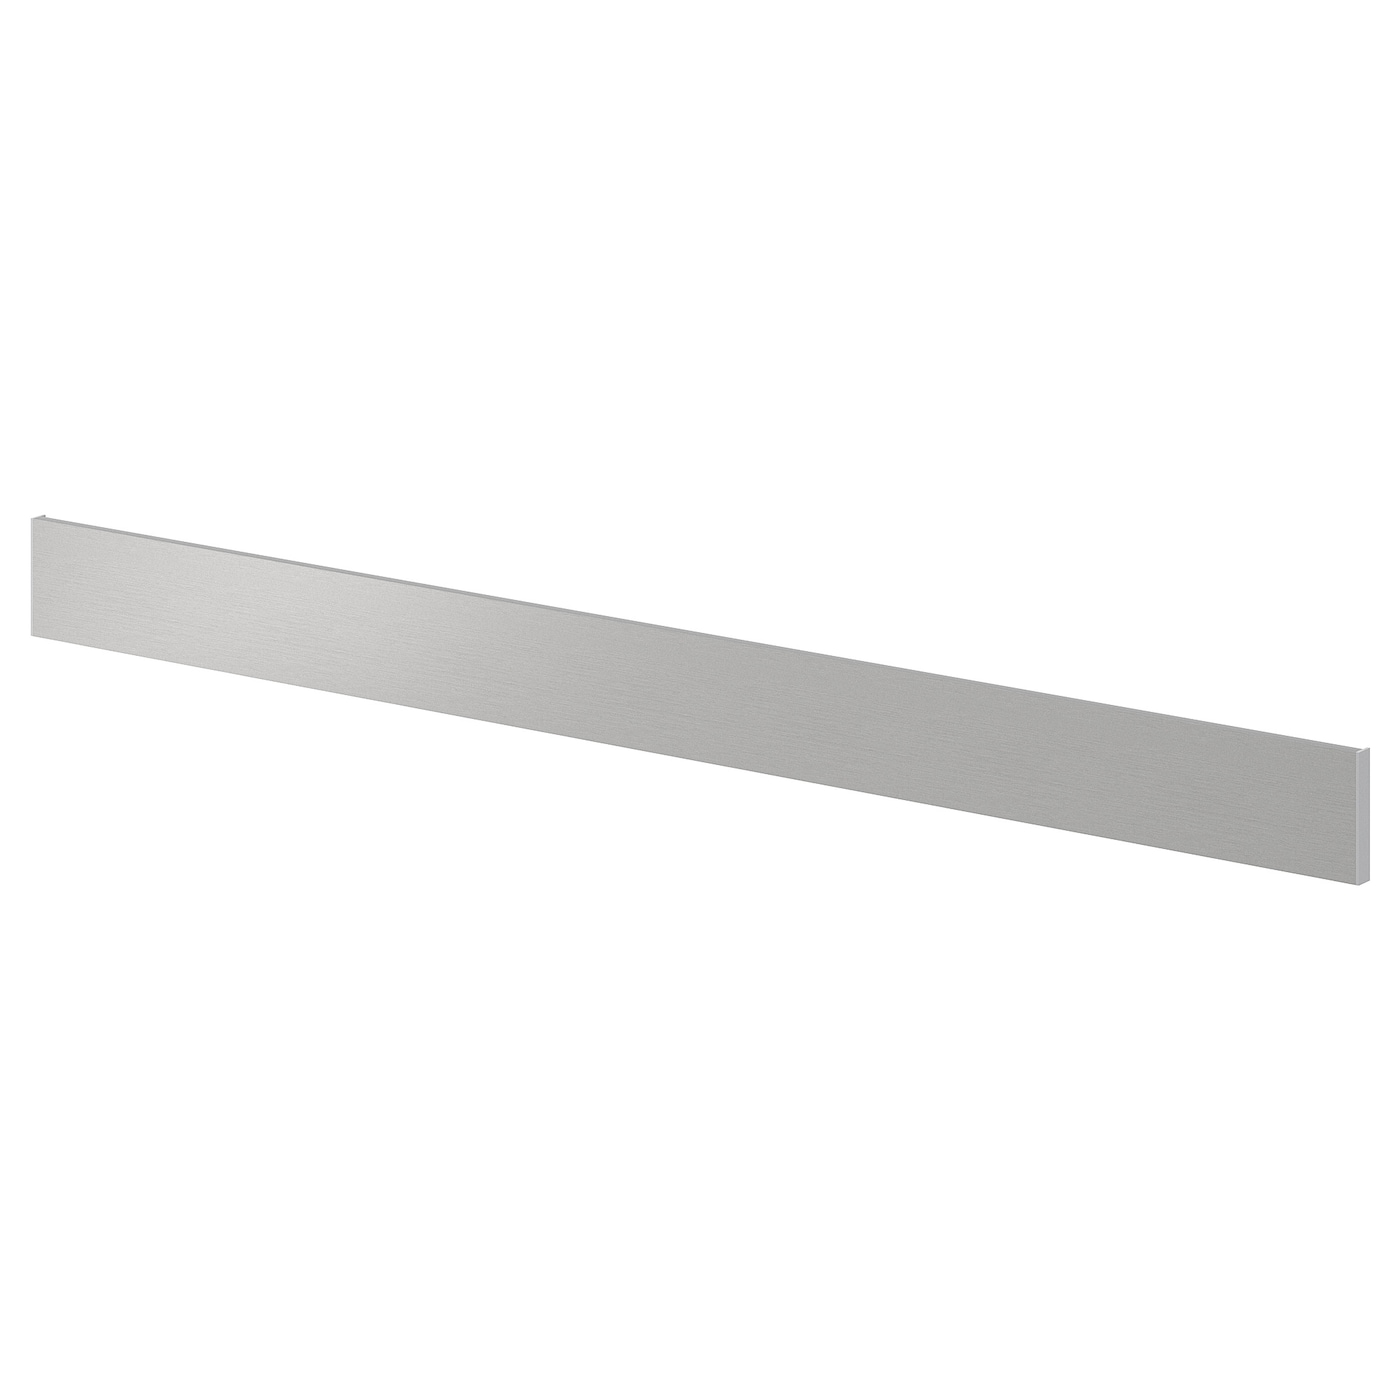 IKEA GREVSTA plinth 25 year guarantee. Read about the terms in the guarantee brochure.